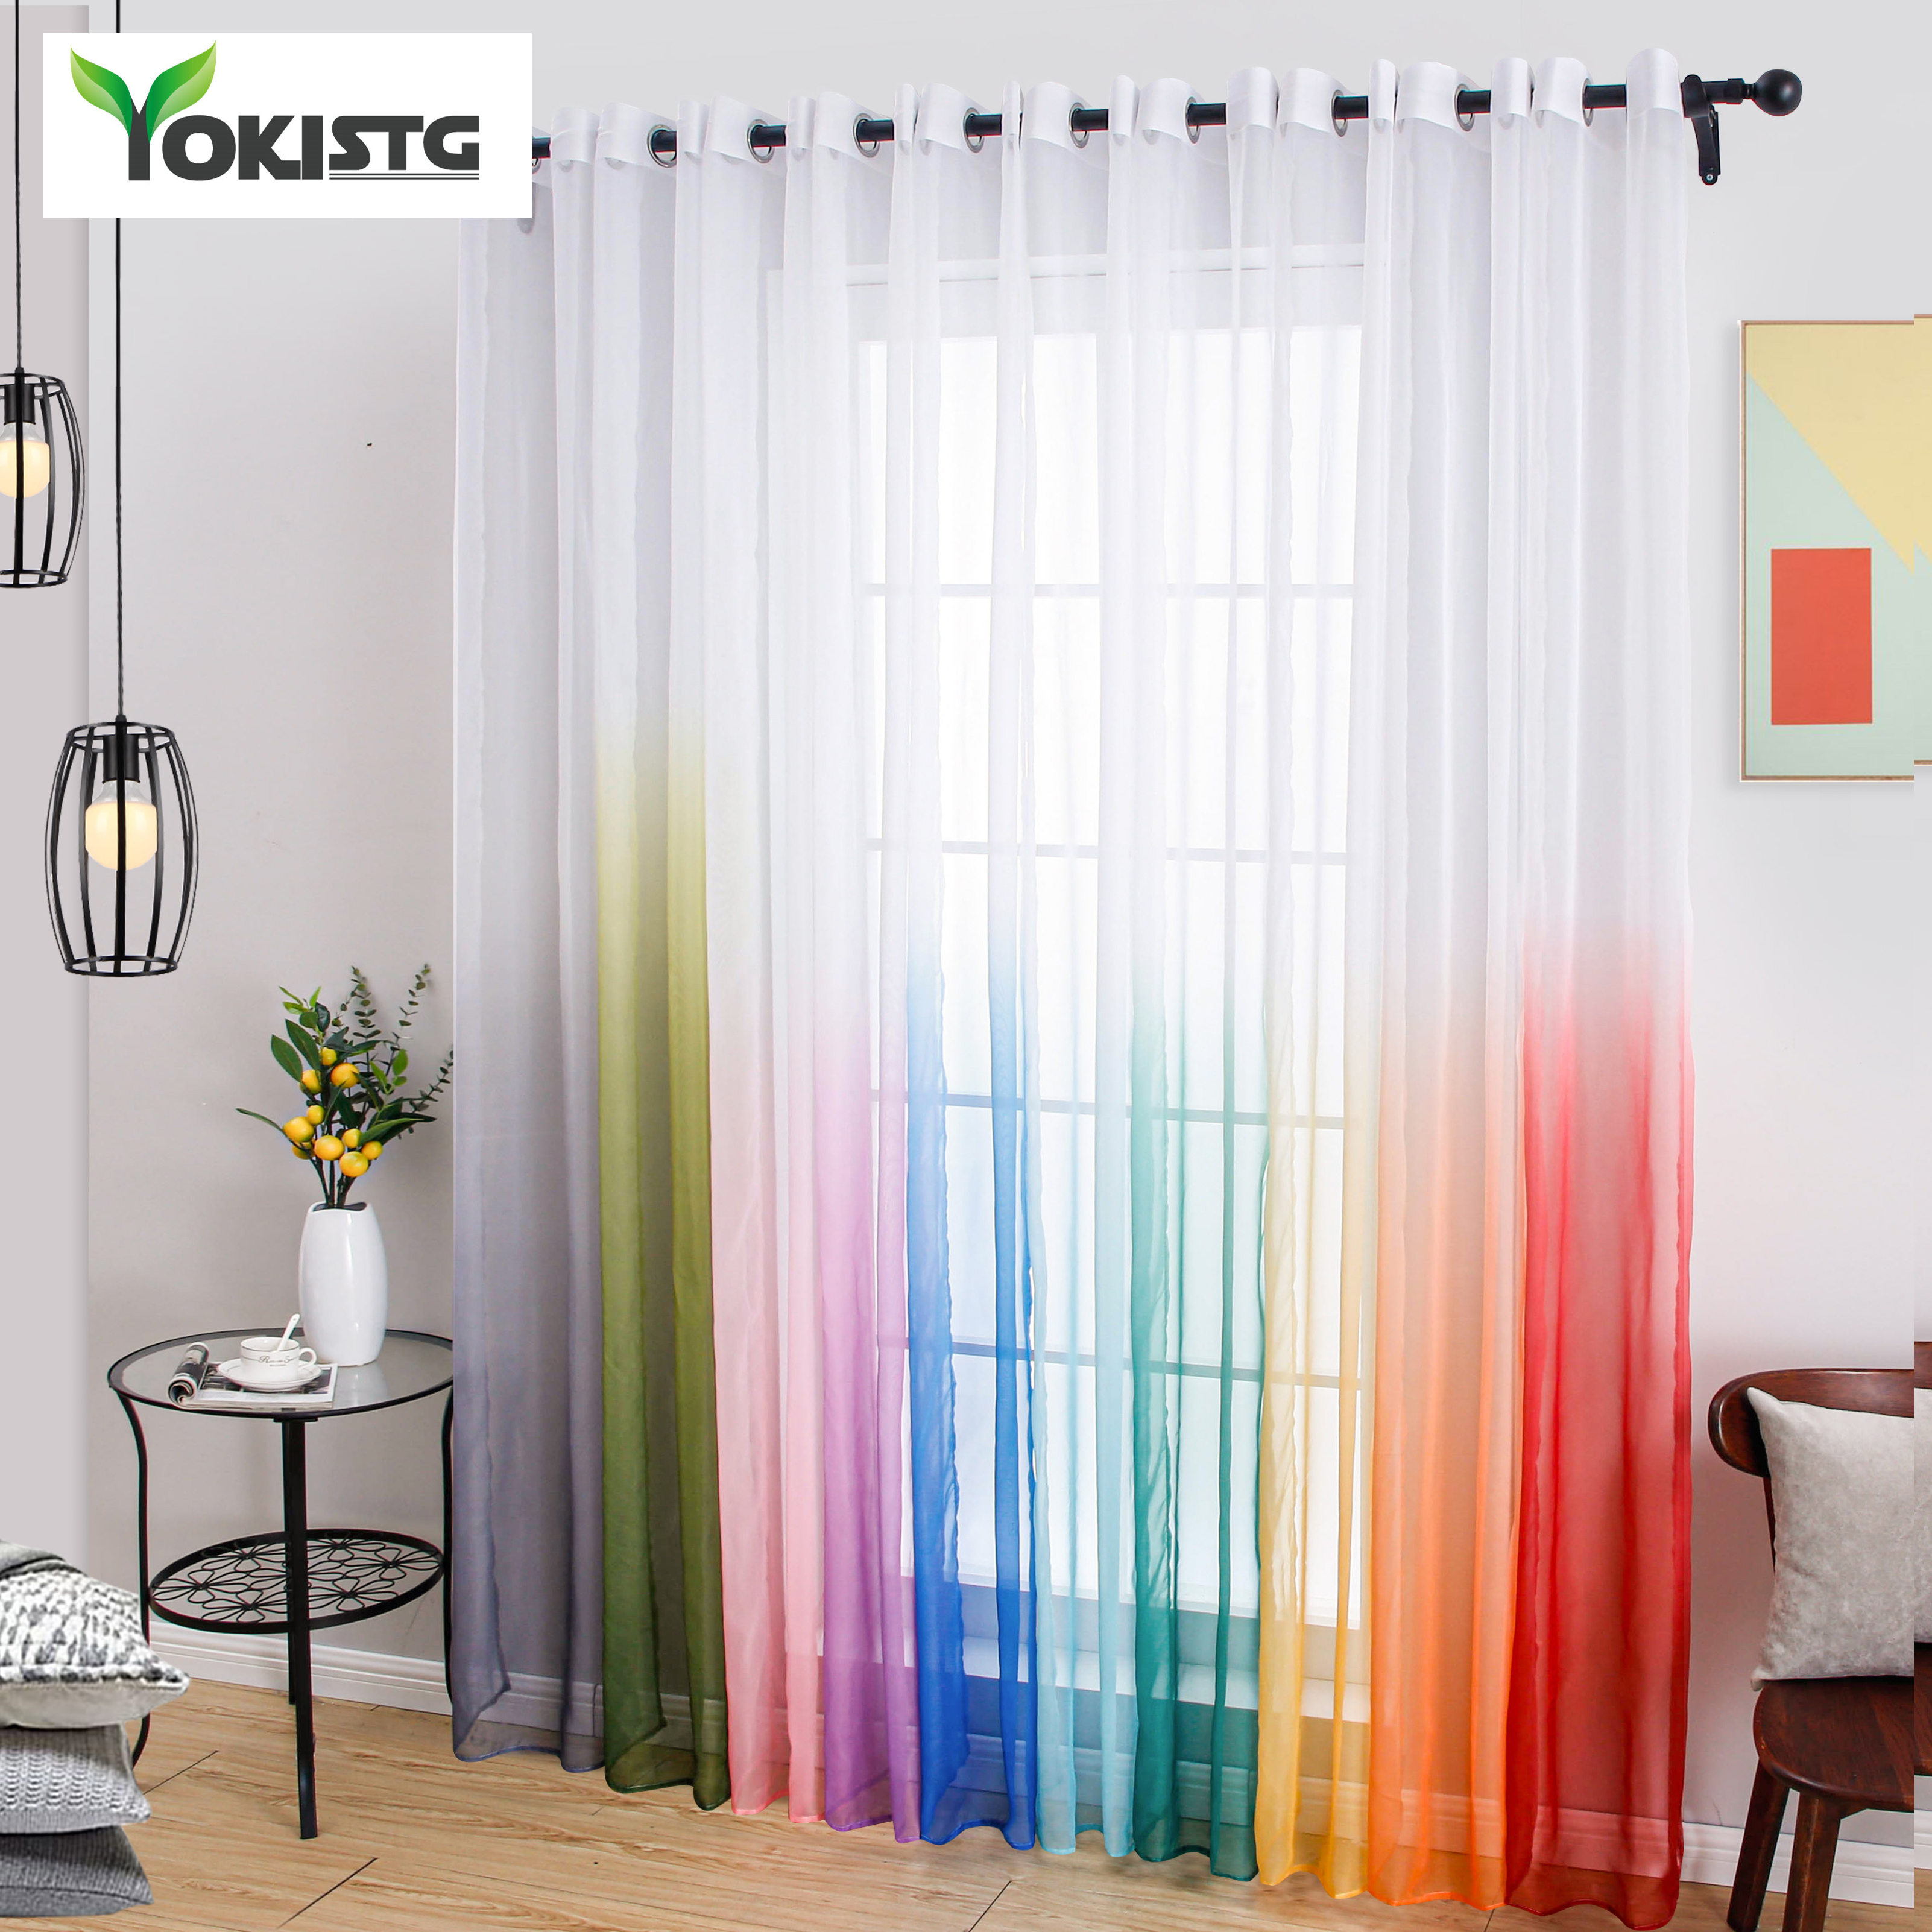 YokiSTG Gradient Tulle Sheer Curtains For Living Room Bedroom Kitchen Transparent Curtains Home Decor Window Treatment Drapes